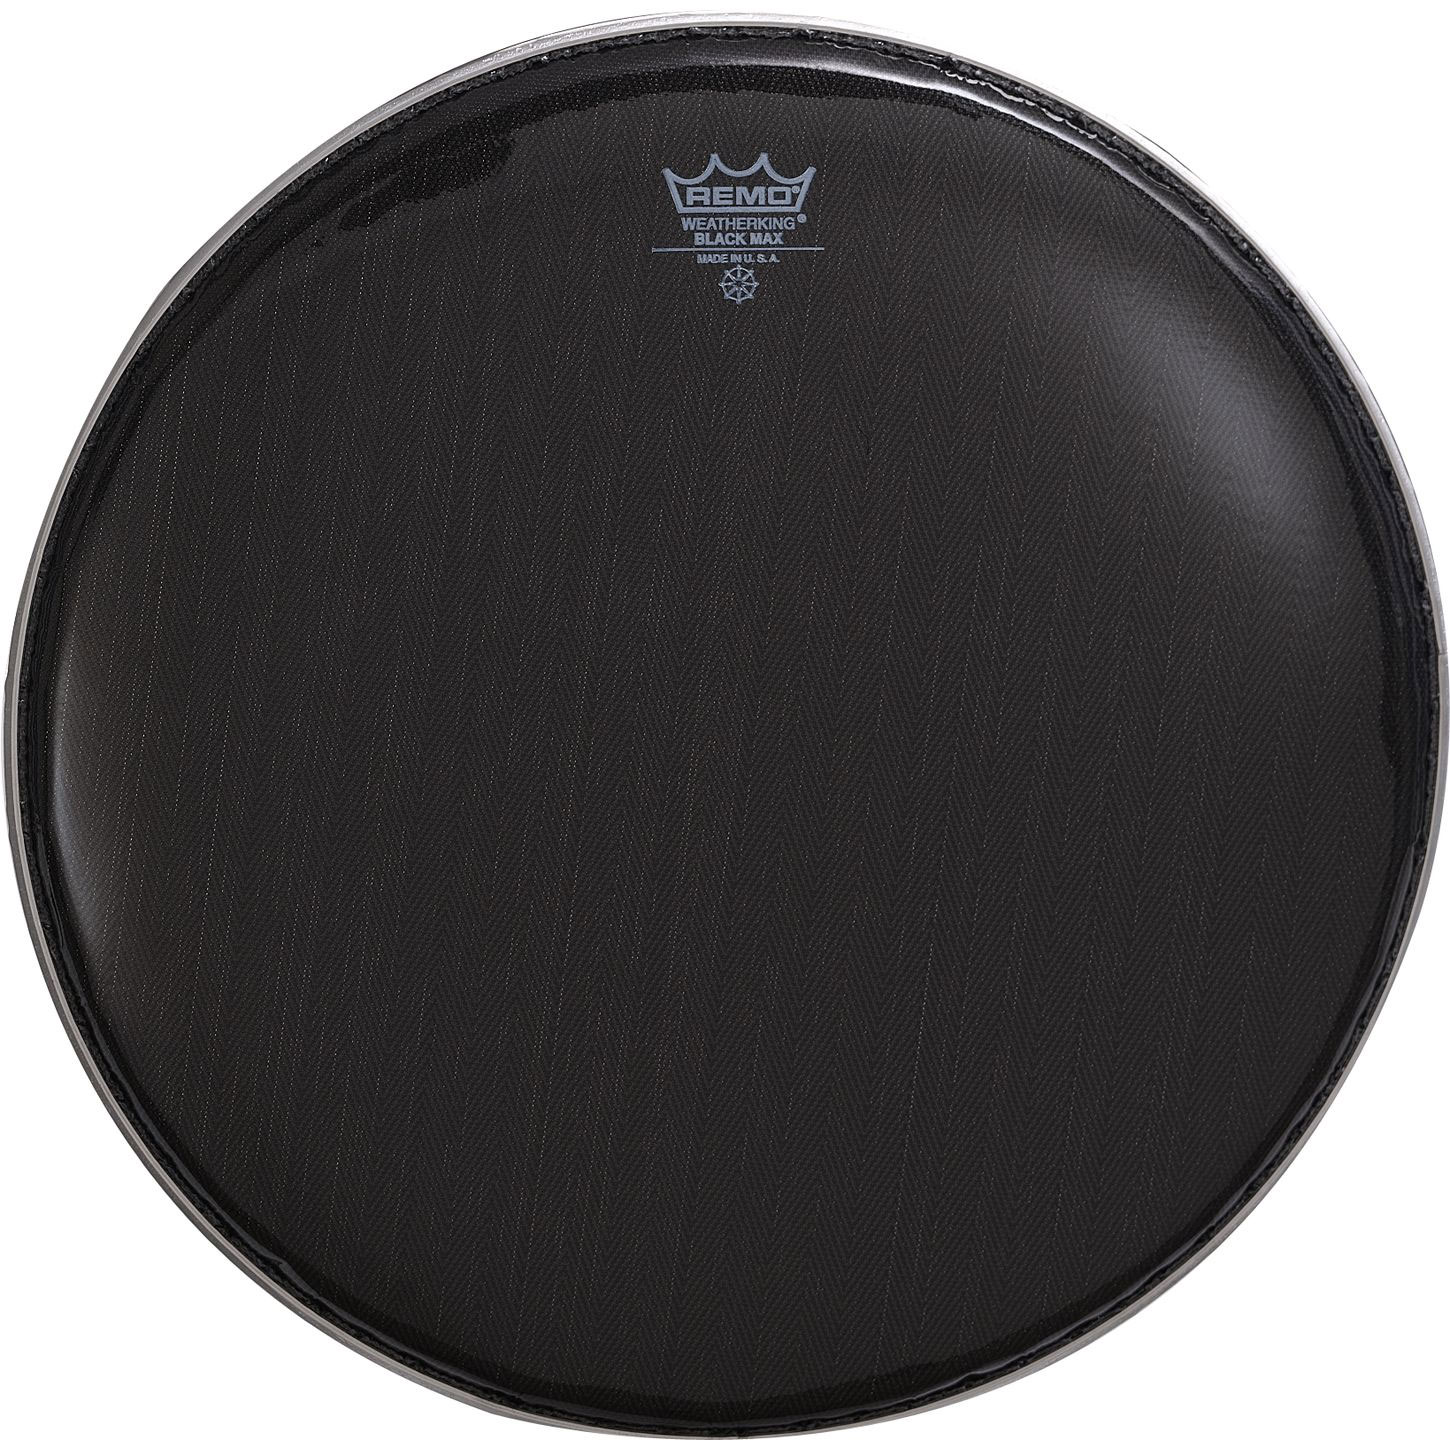 "Remo 13"" Black Max Marching Snare Drum Top (Batter) Head"